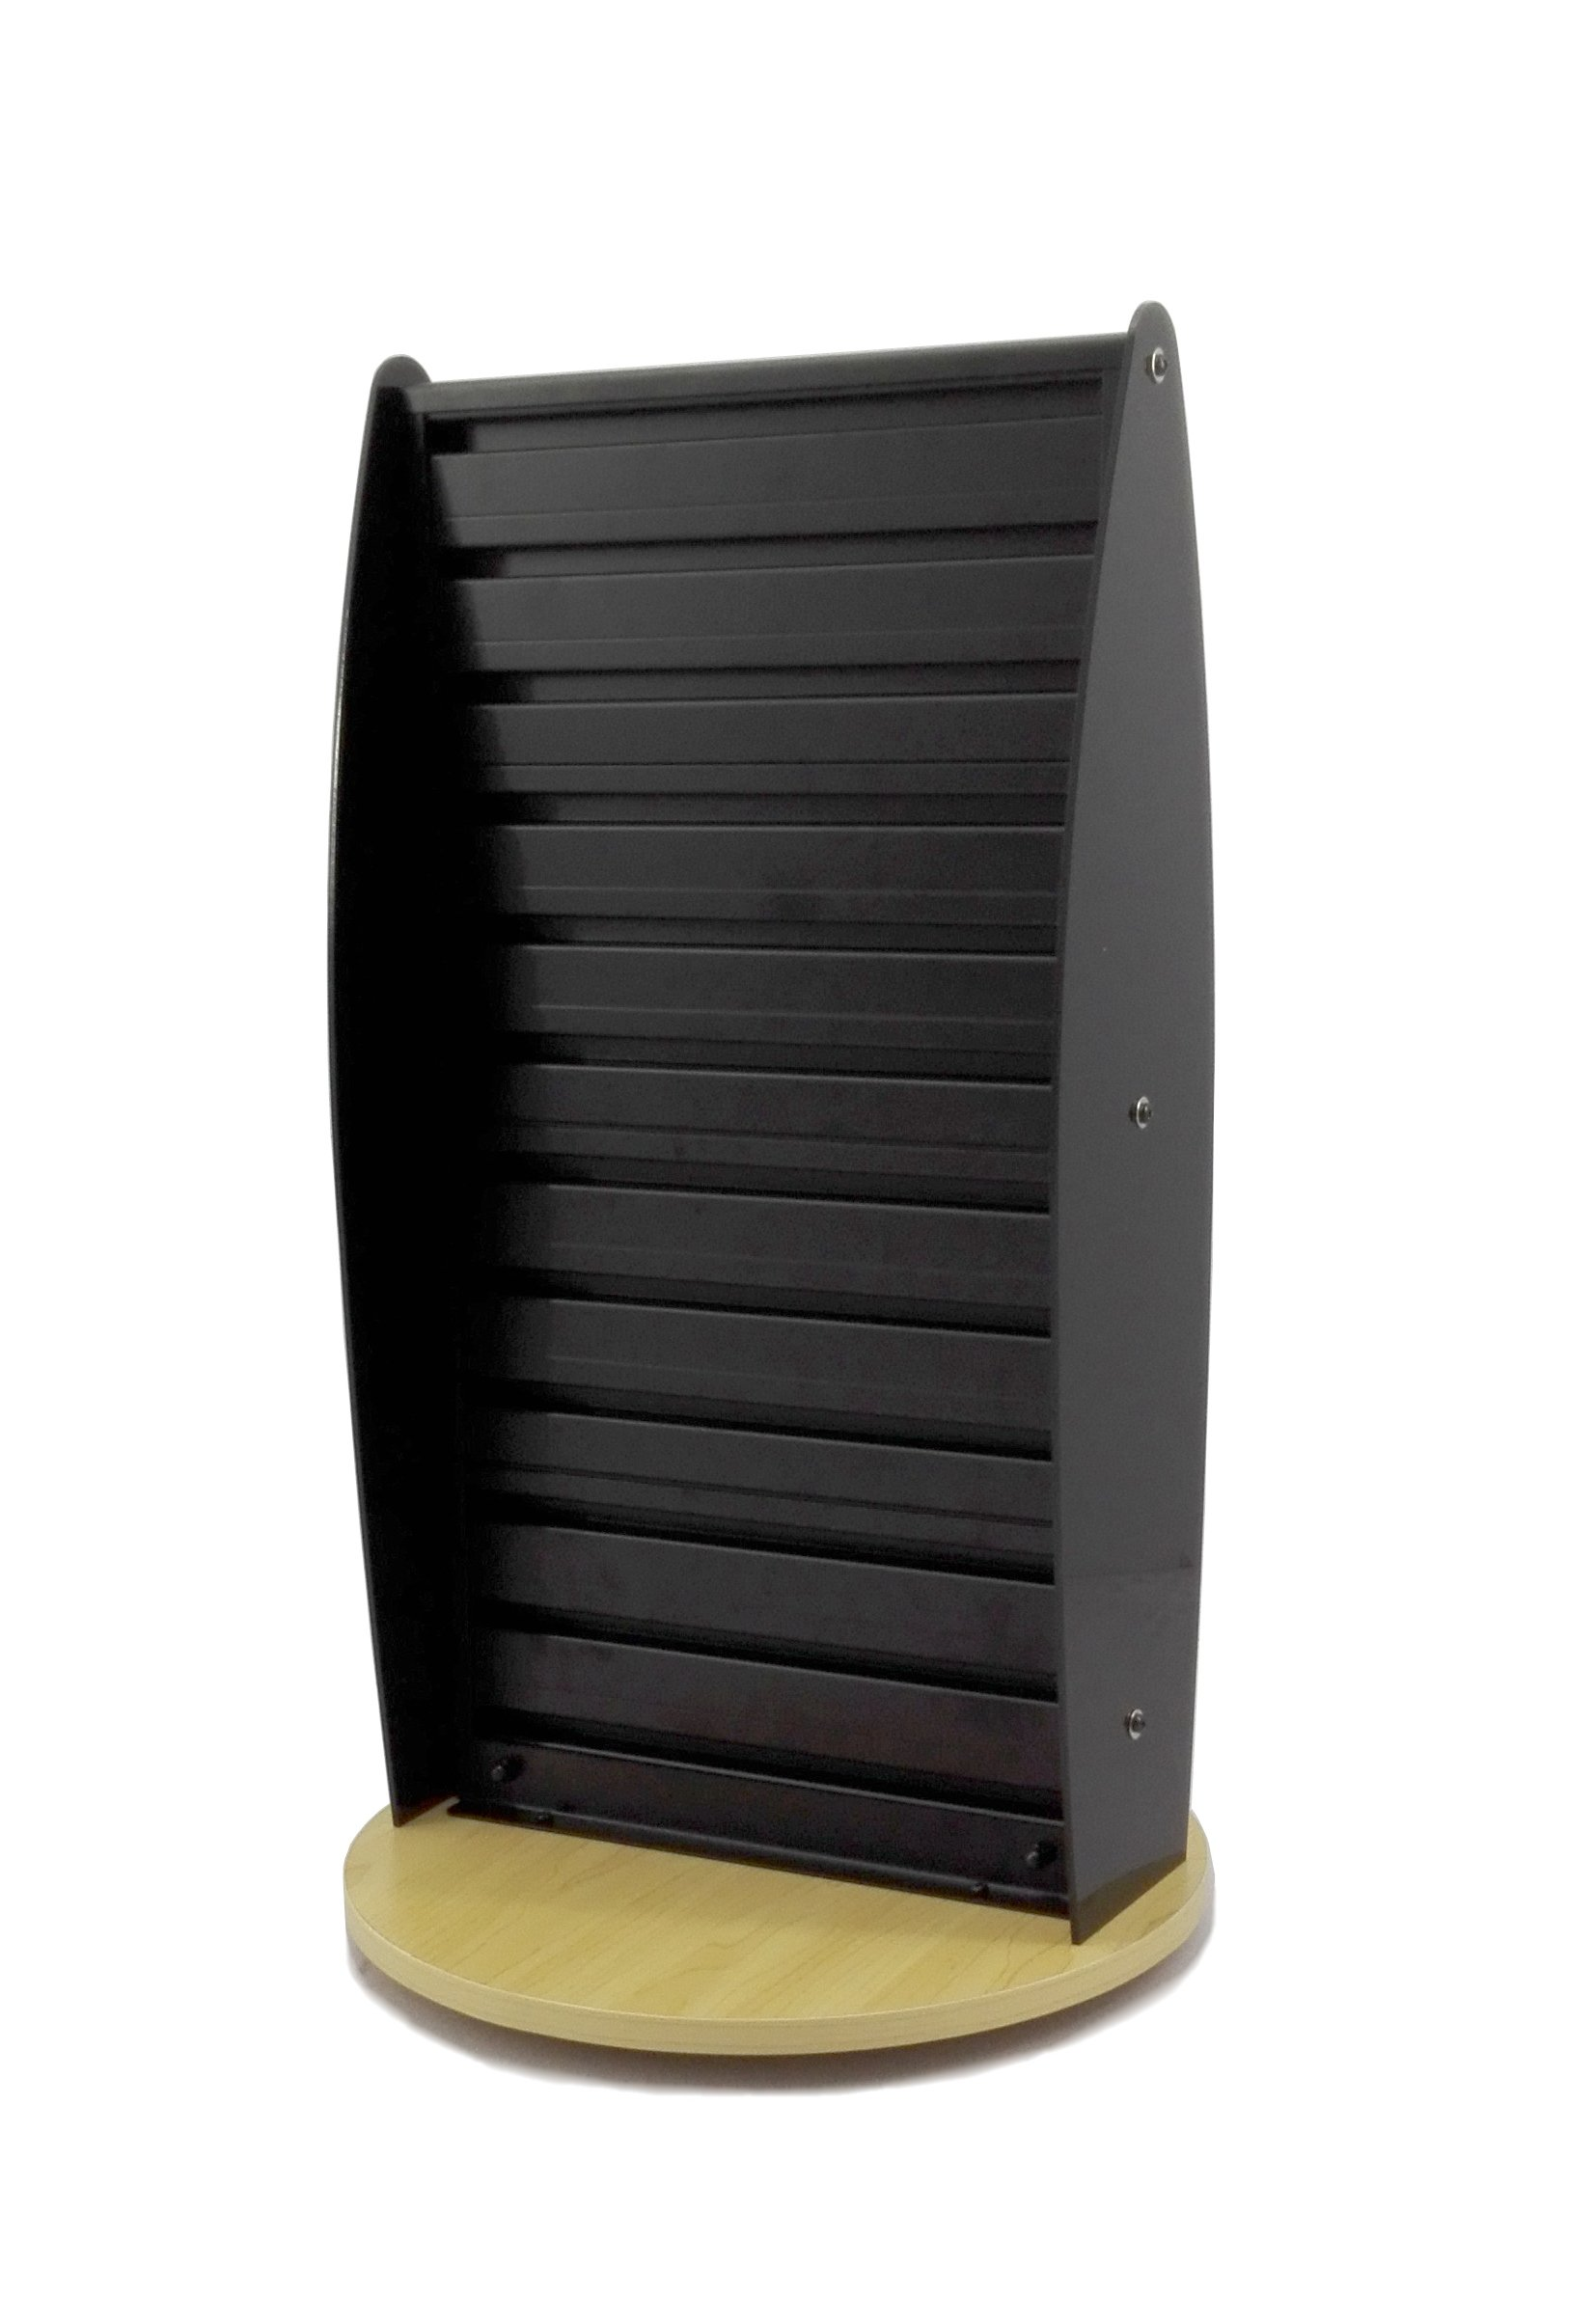 FixtureDisplays Black Slatwall Display Countertop Spinner Rack POP POS Retail Stand 11560-BLACK